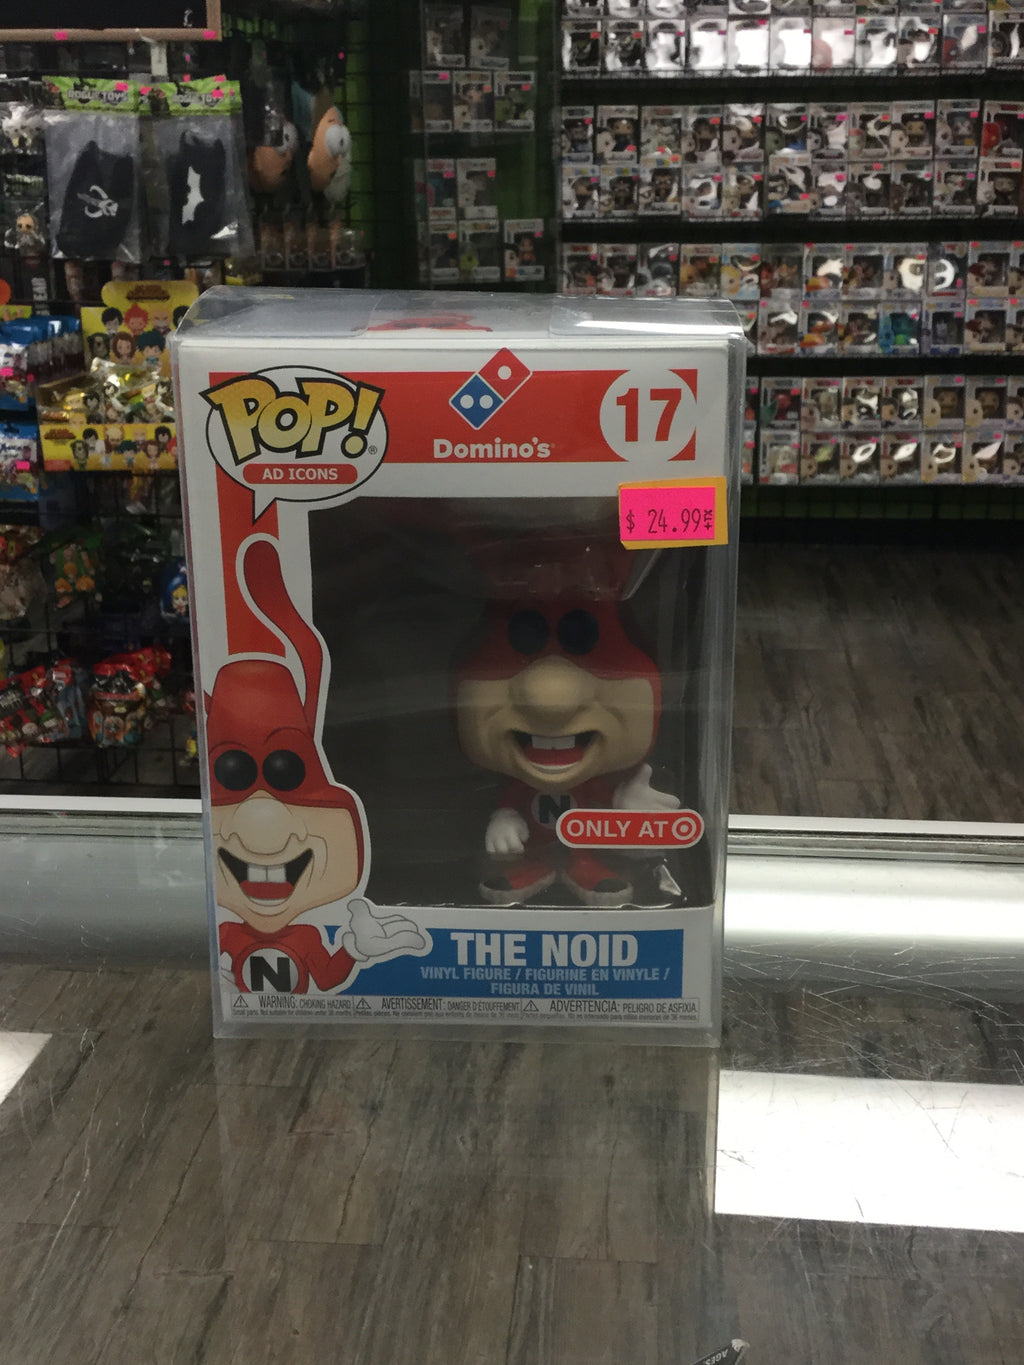 FUNKO POP! Ad Icons #17, Domino's The Noid (Target Exclusive)